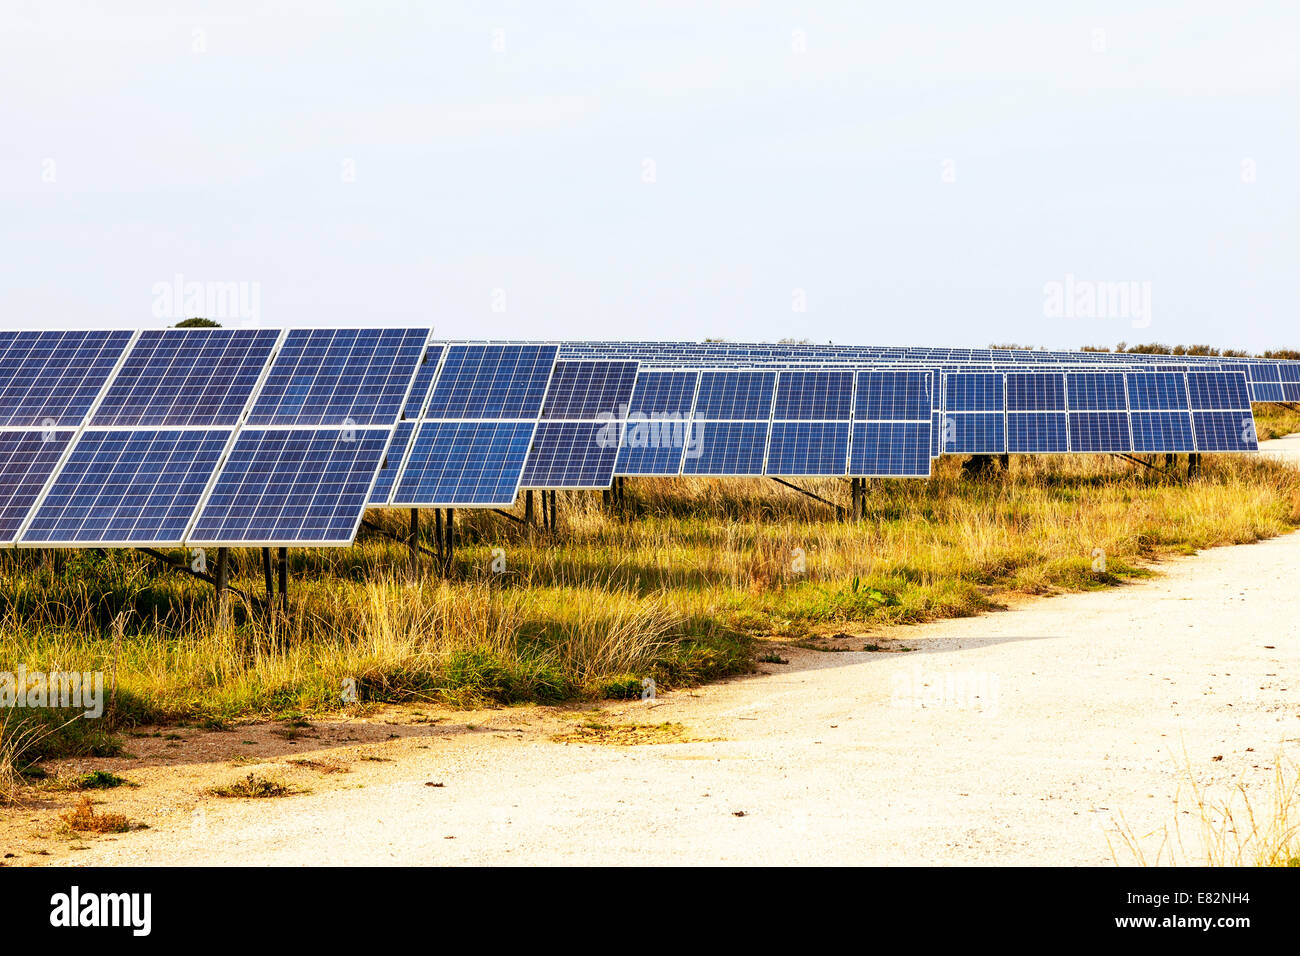 Solar panel panels farm field full Hayle Cornwall Cornish west country typical dramatic electric electricity generators - Stock Image